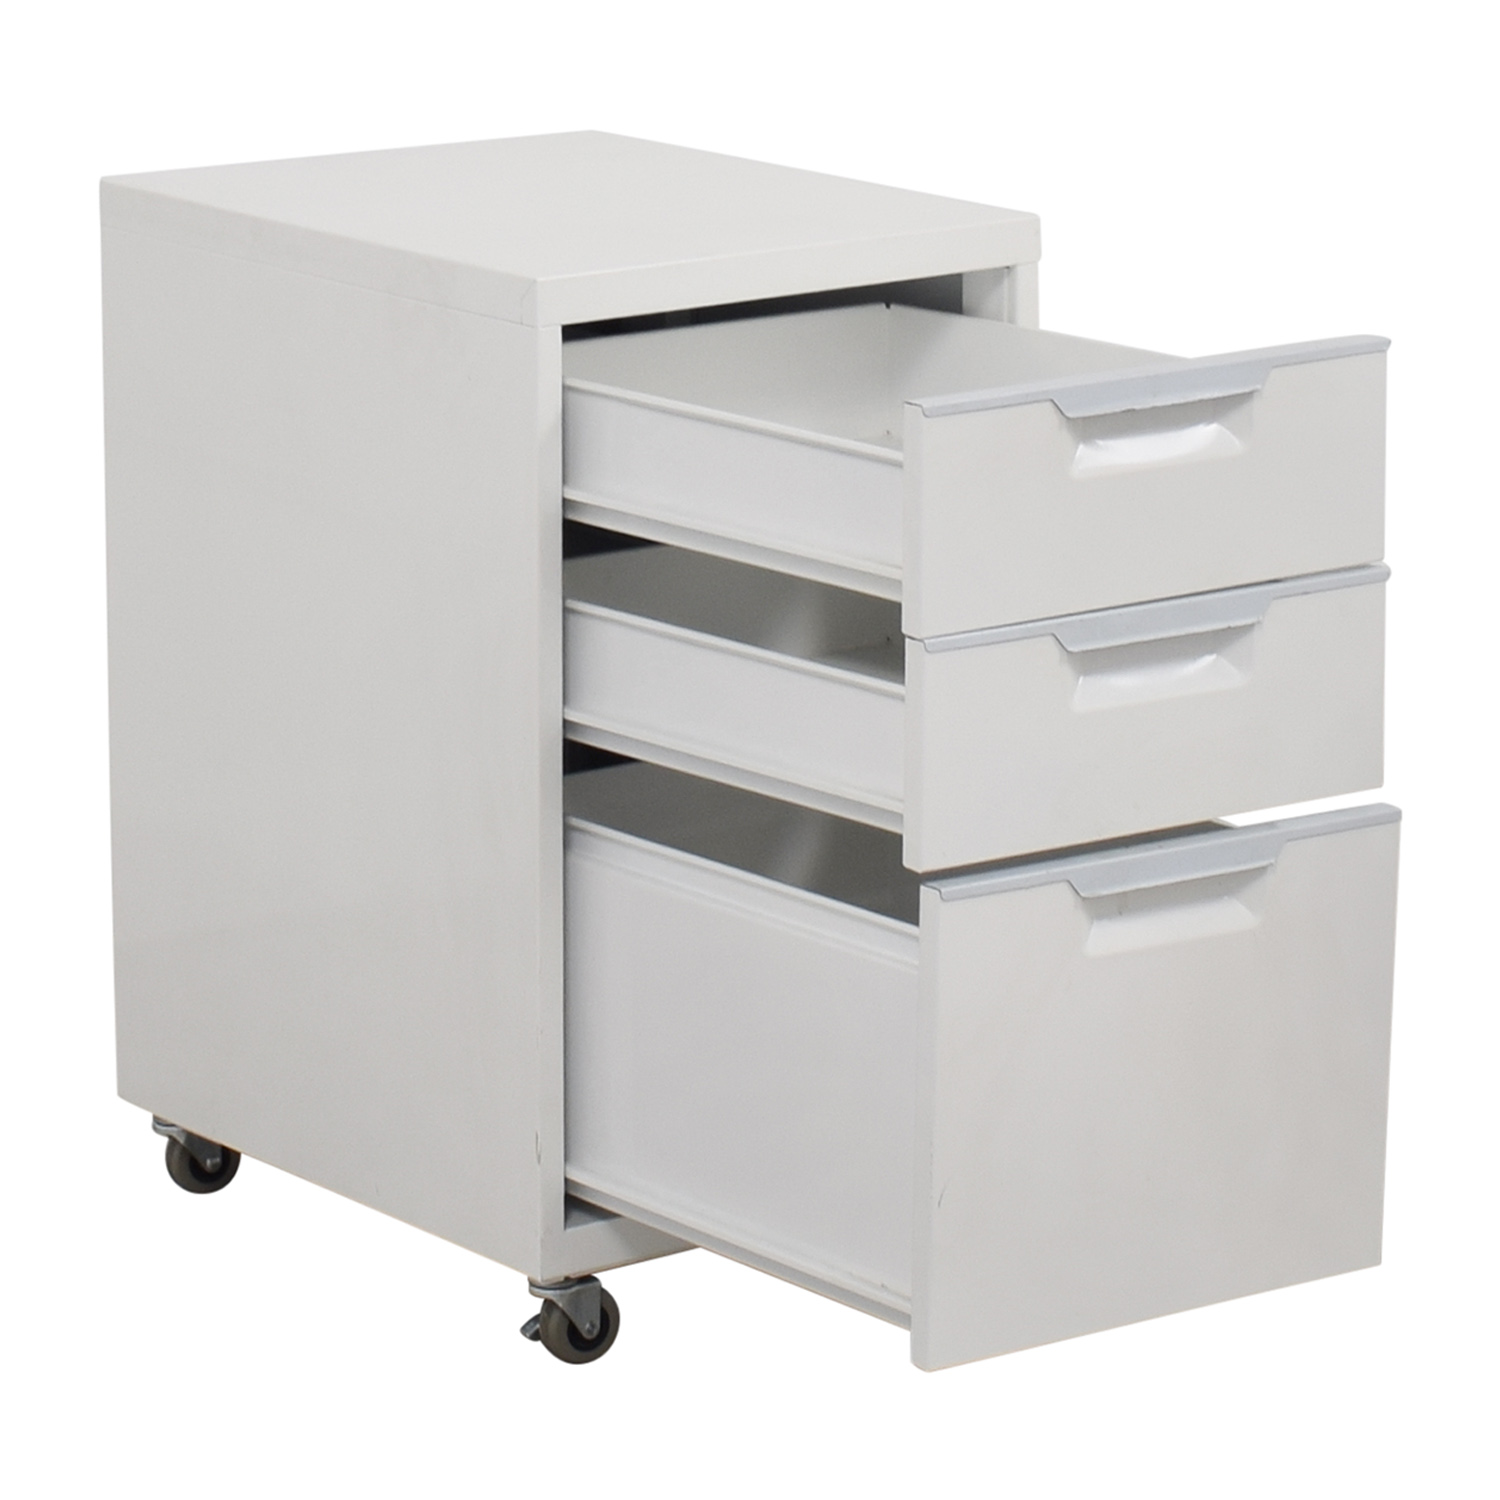 CB2 CB2 TPS White 3-Drawer Filing Cabinet nj